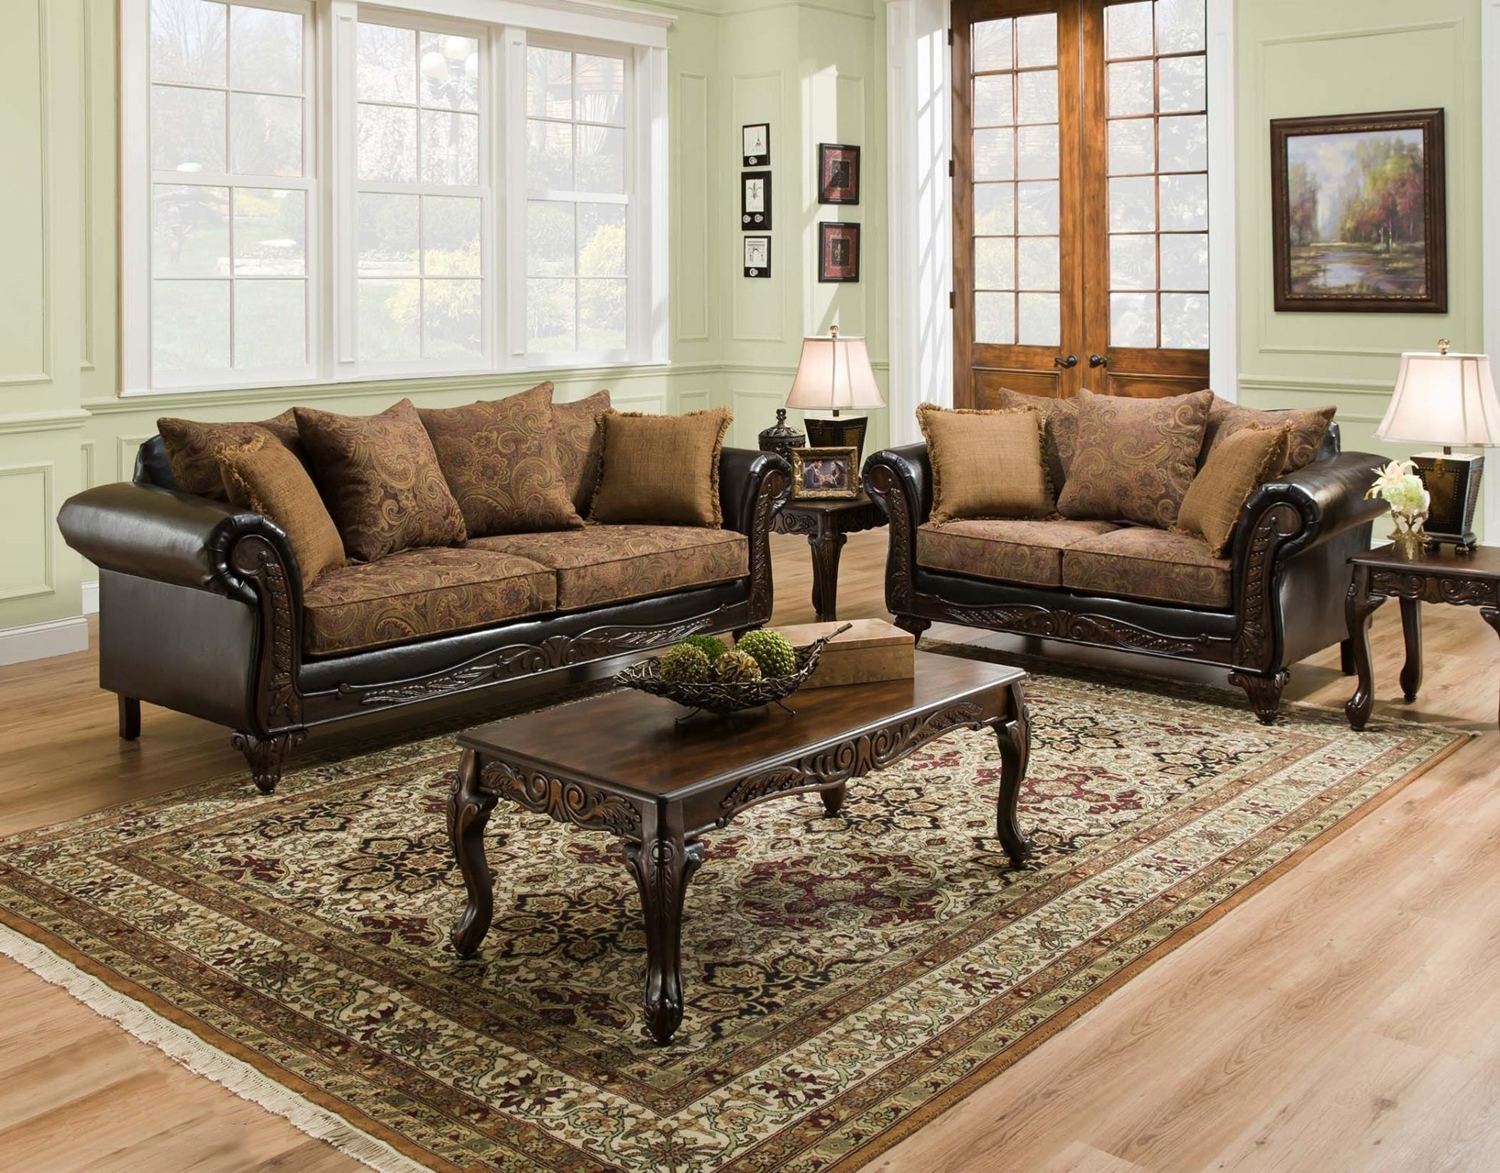 San marino traditional living room furniture set w wood trim accent pillows ebay - Living room furniture traditional ...